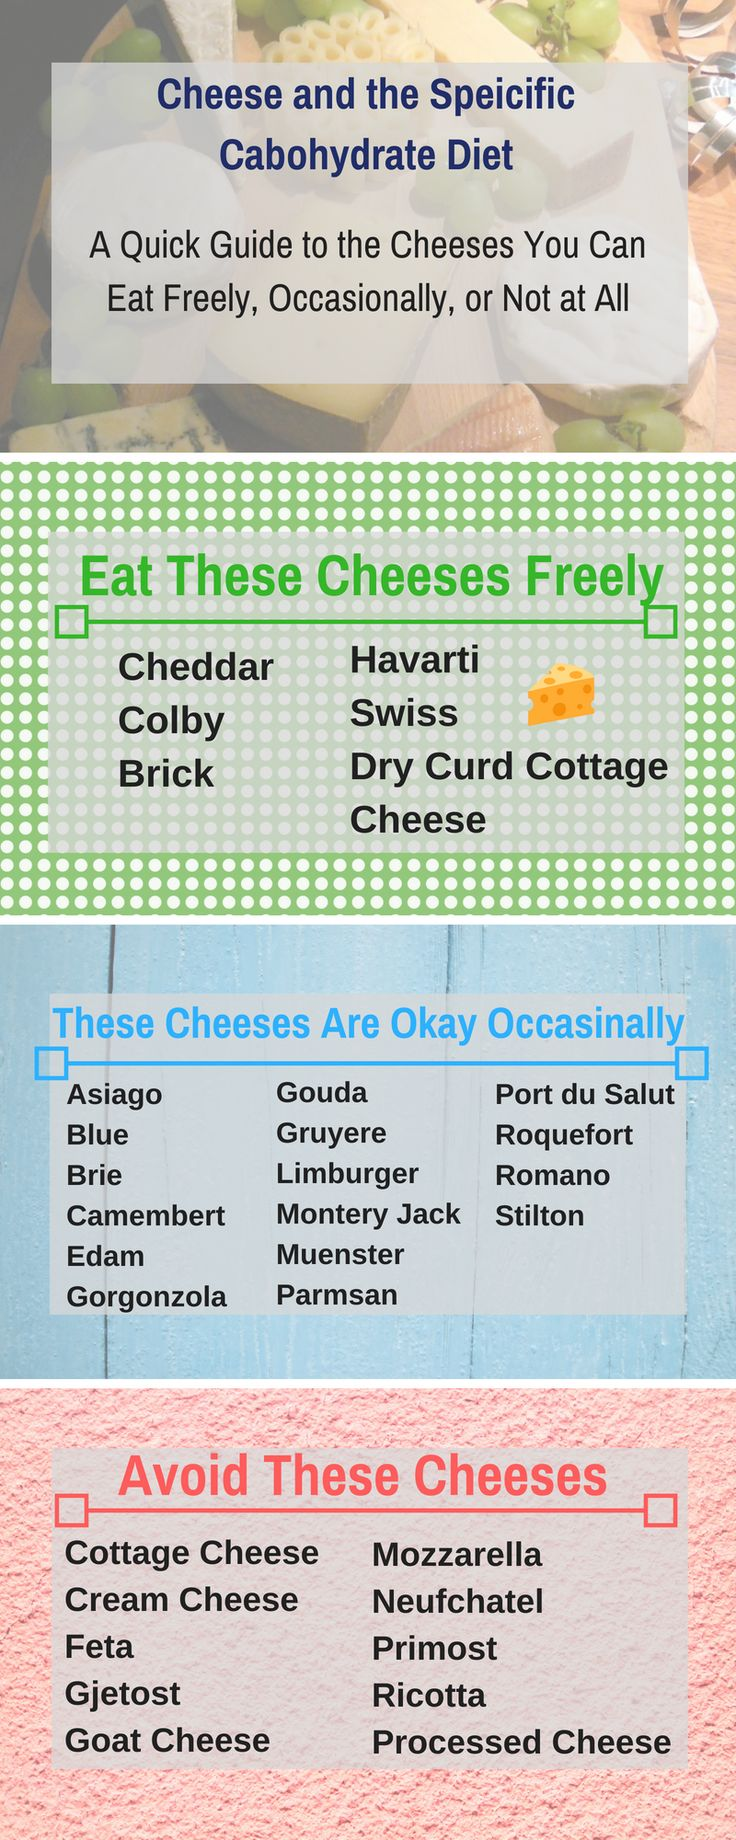 Cheese and the SCD Diet Infographic